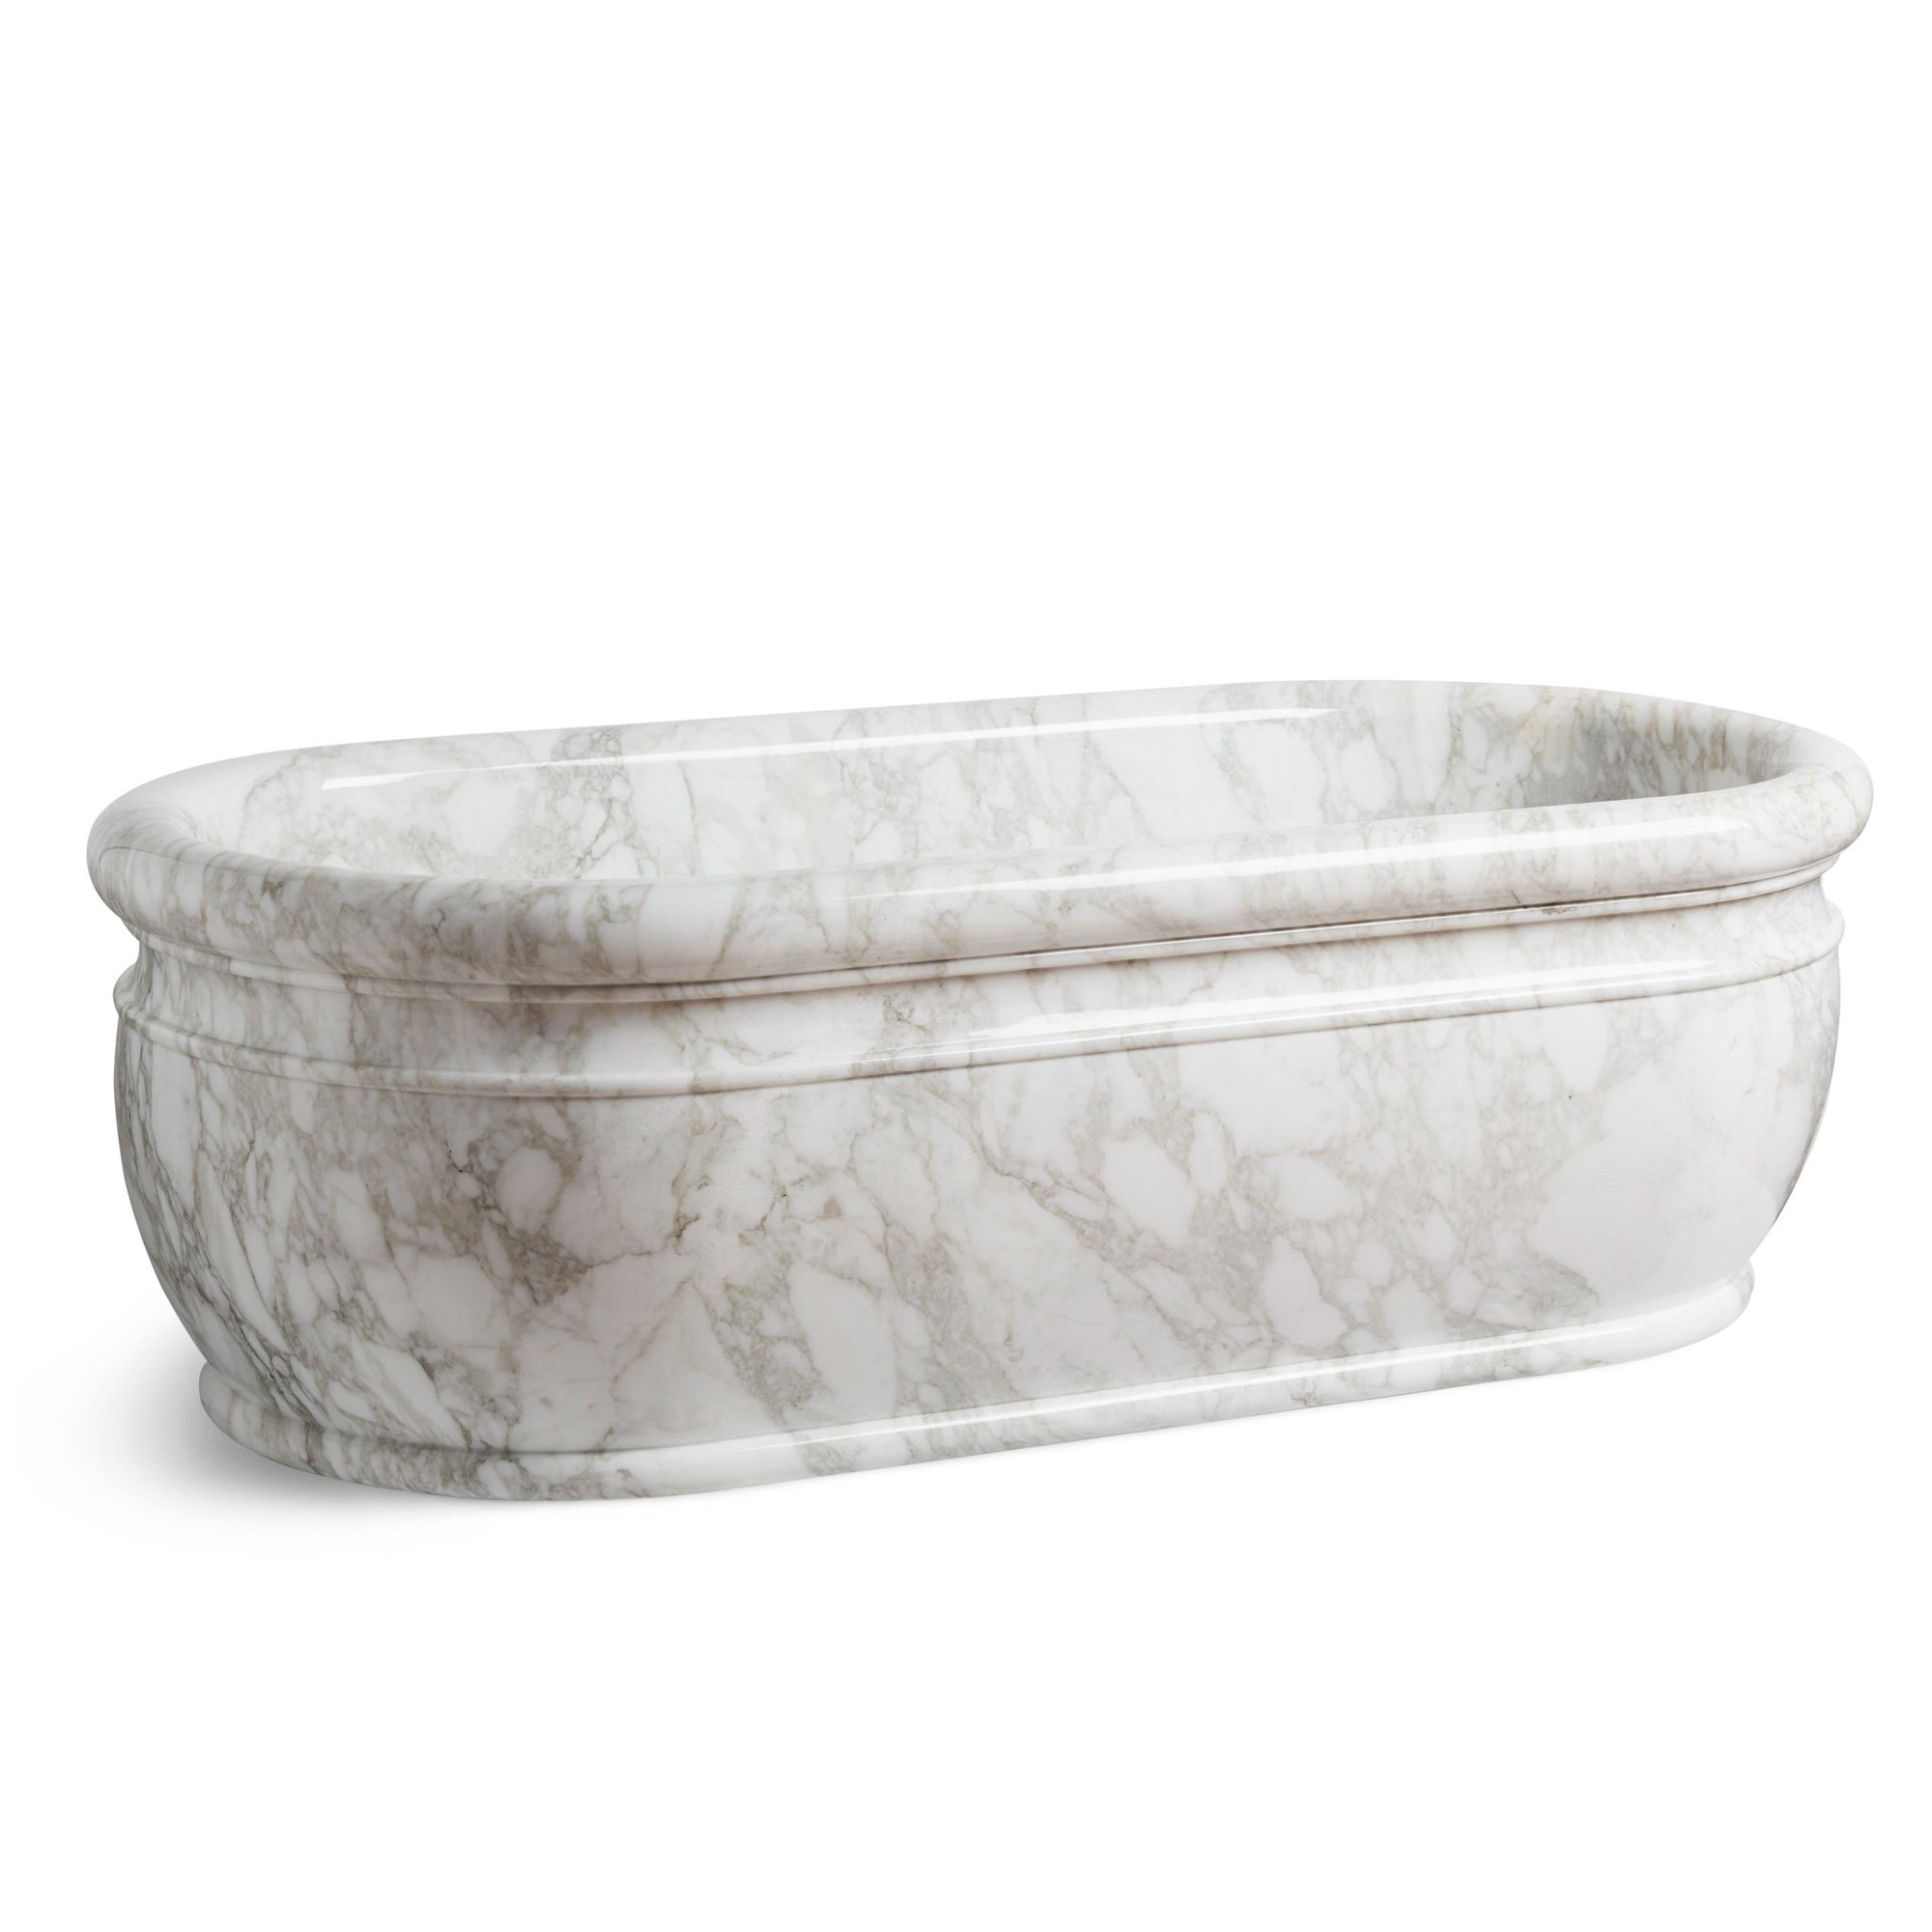 0292TUB-CALA Sherle Wagner International Calacatta Grecian Tub Large